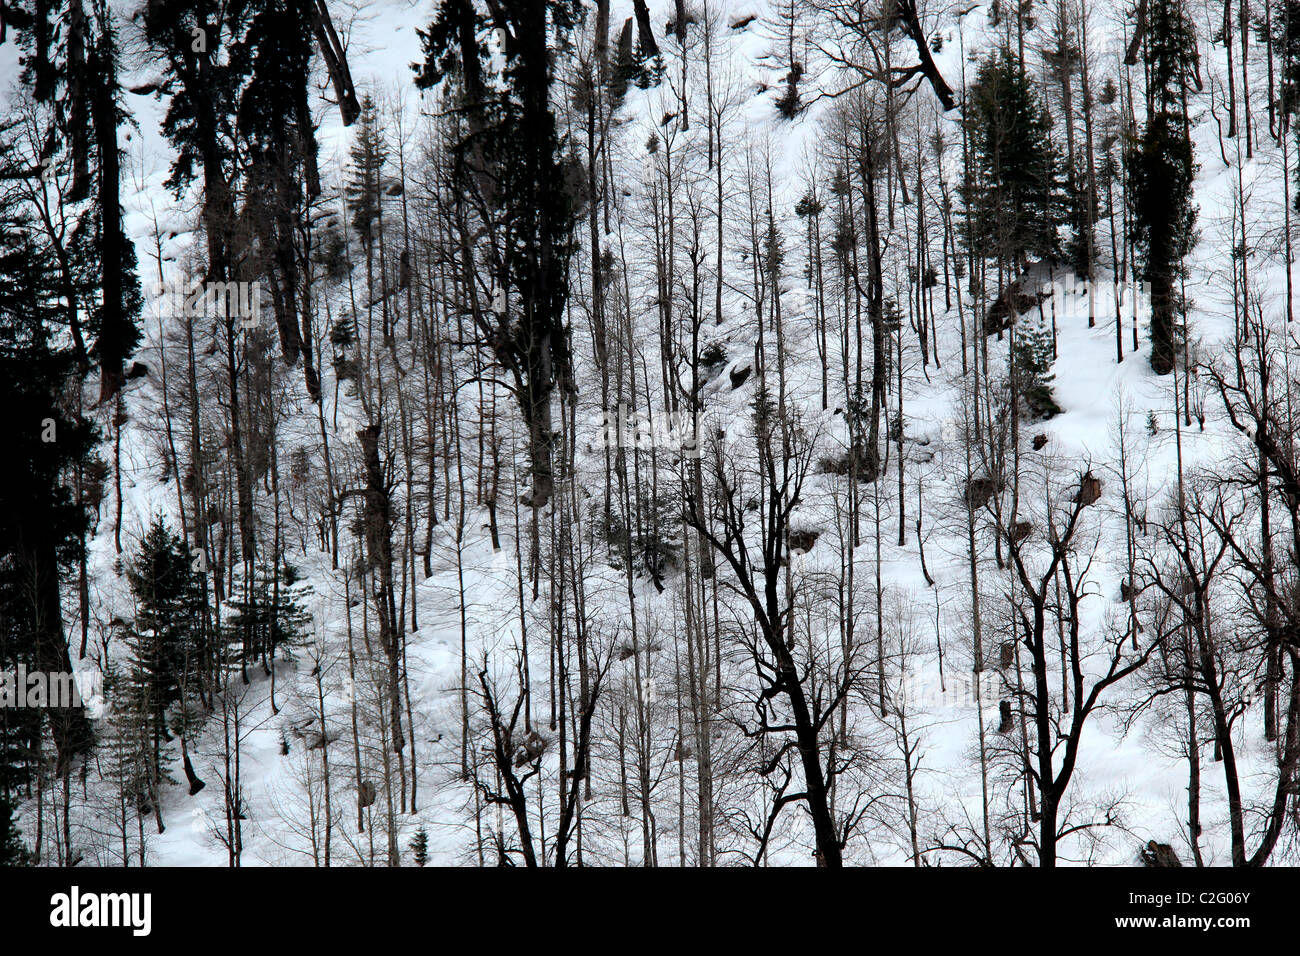 A snow covered pine forest in manali, India - Stock Image